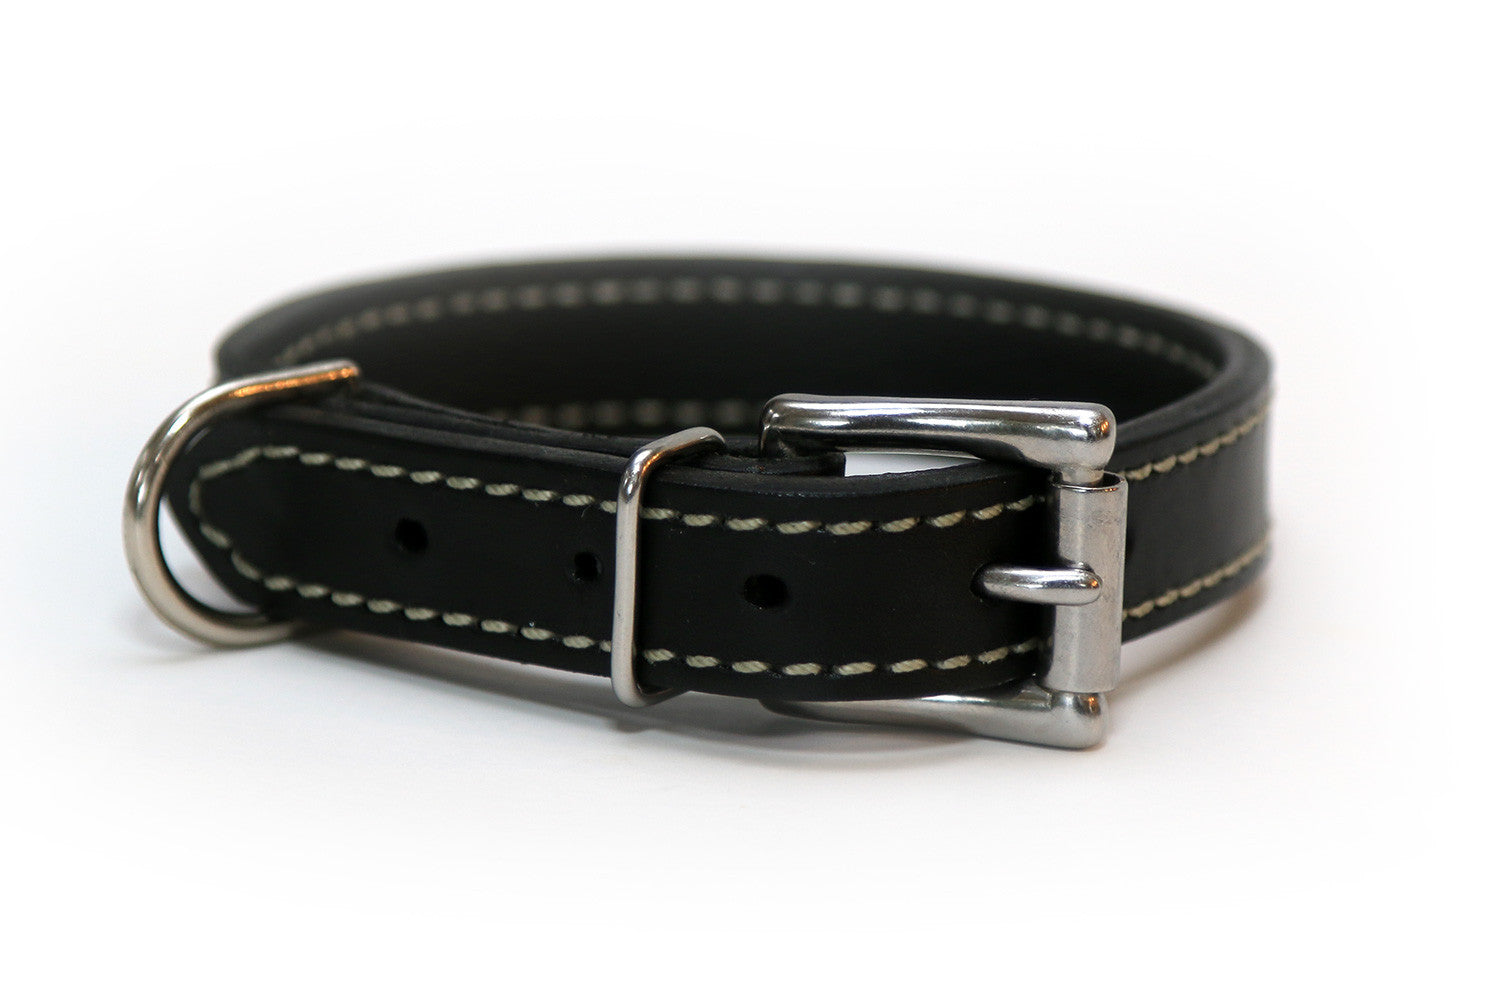 Latigo Leather 3/4 Inch Stiched Dog Collar in Black, Brown, or Burgundy